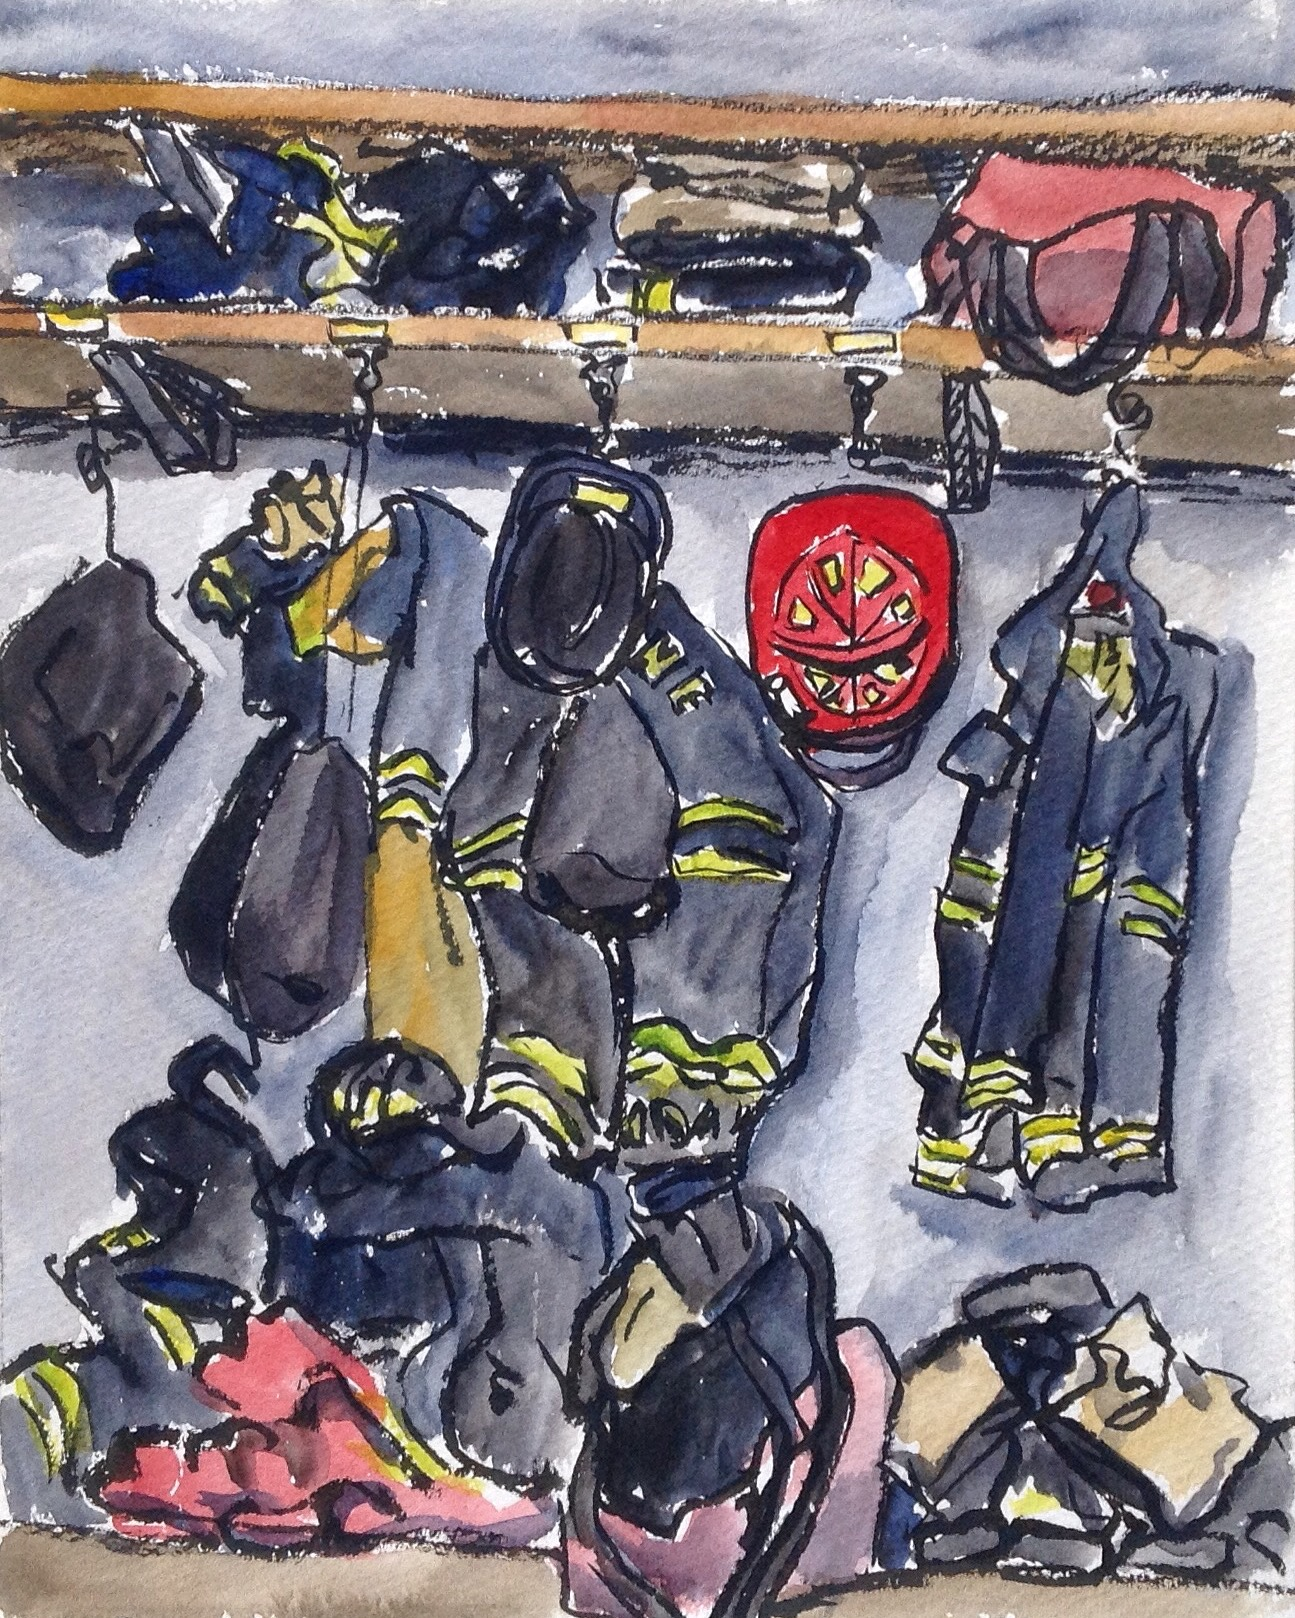 This classic scene caught my eye-coats, bags, and helmets hanging on their hooks, ready to for the firemen to swing into action!